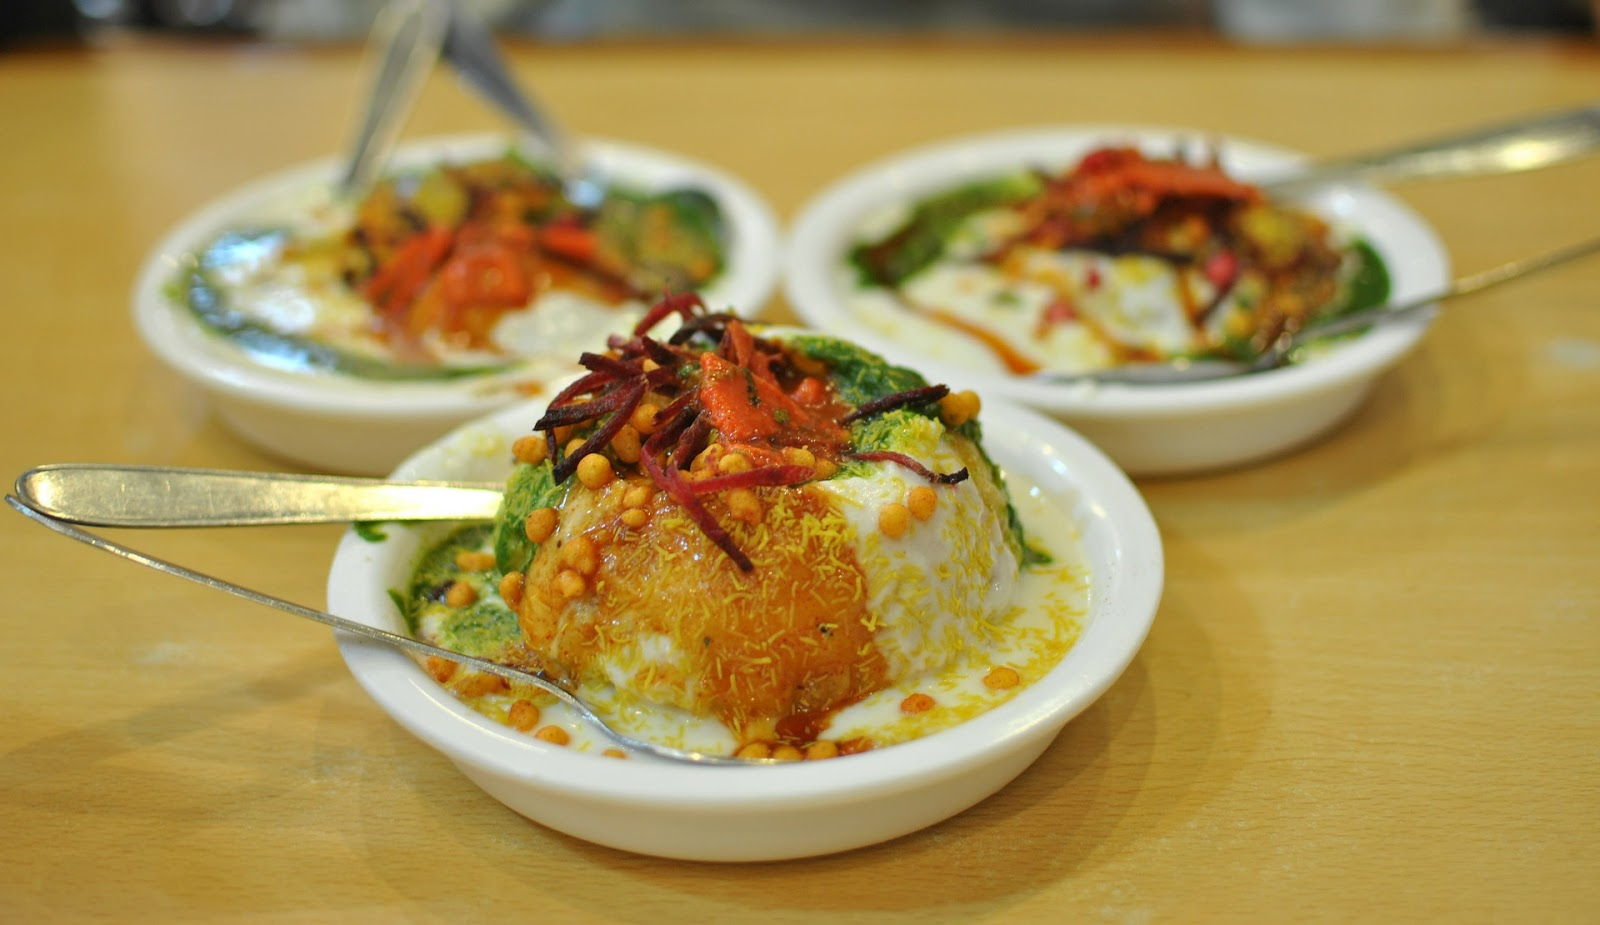 Every DELHI FOODIE should have this list of CHAAT PLACES on their 'to visit list'. 2